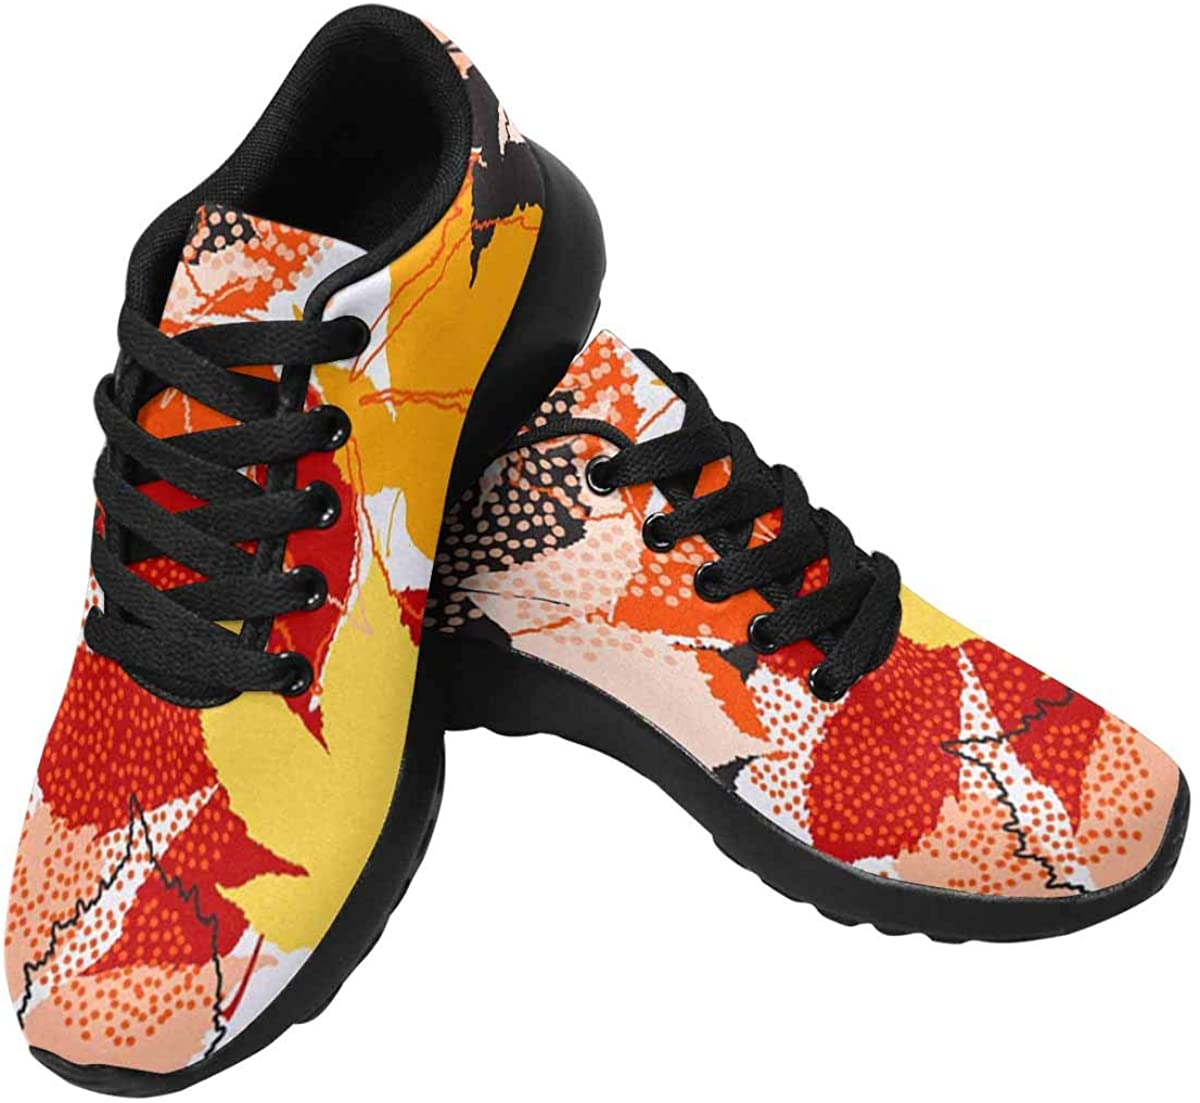 InterestPrint Women's Running Shoes Lightweight Non-Slip Breathable Walking Shoes Autumn Maple Leaf in Black Yellow Red Orange